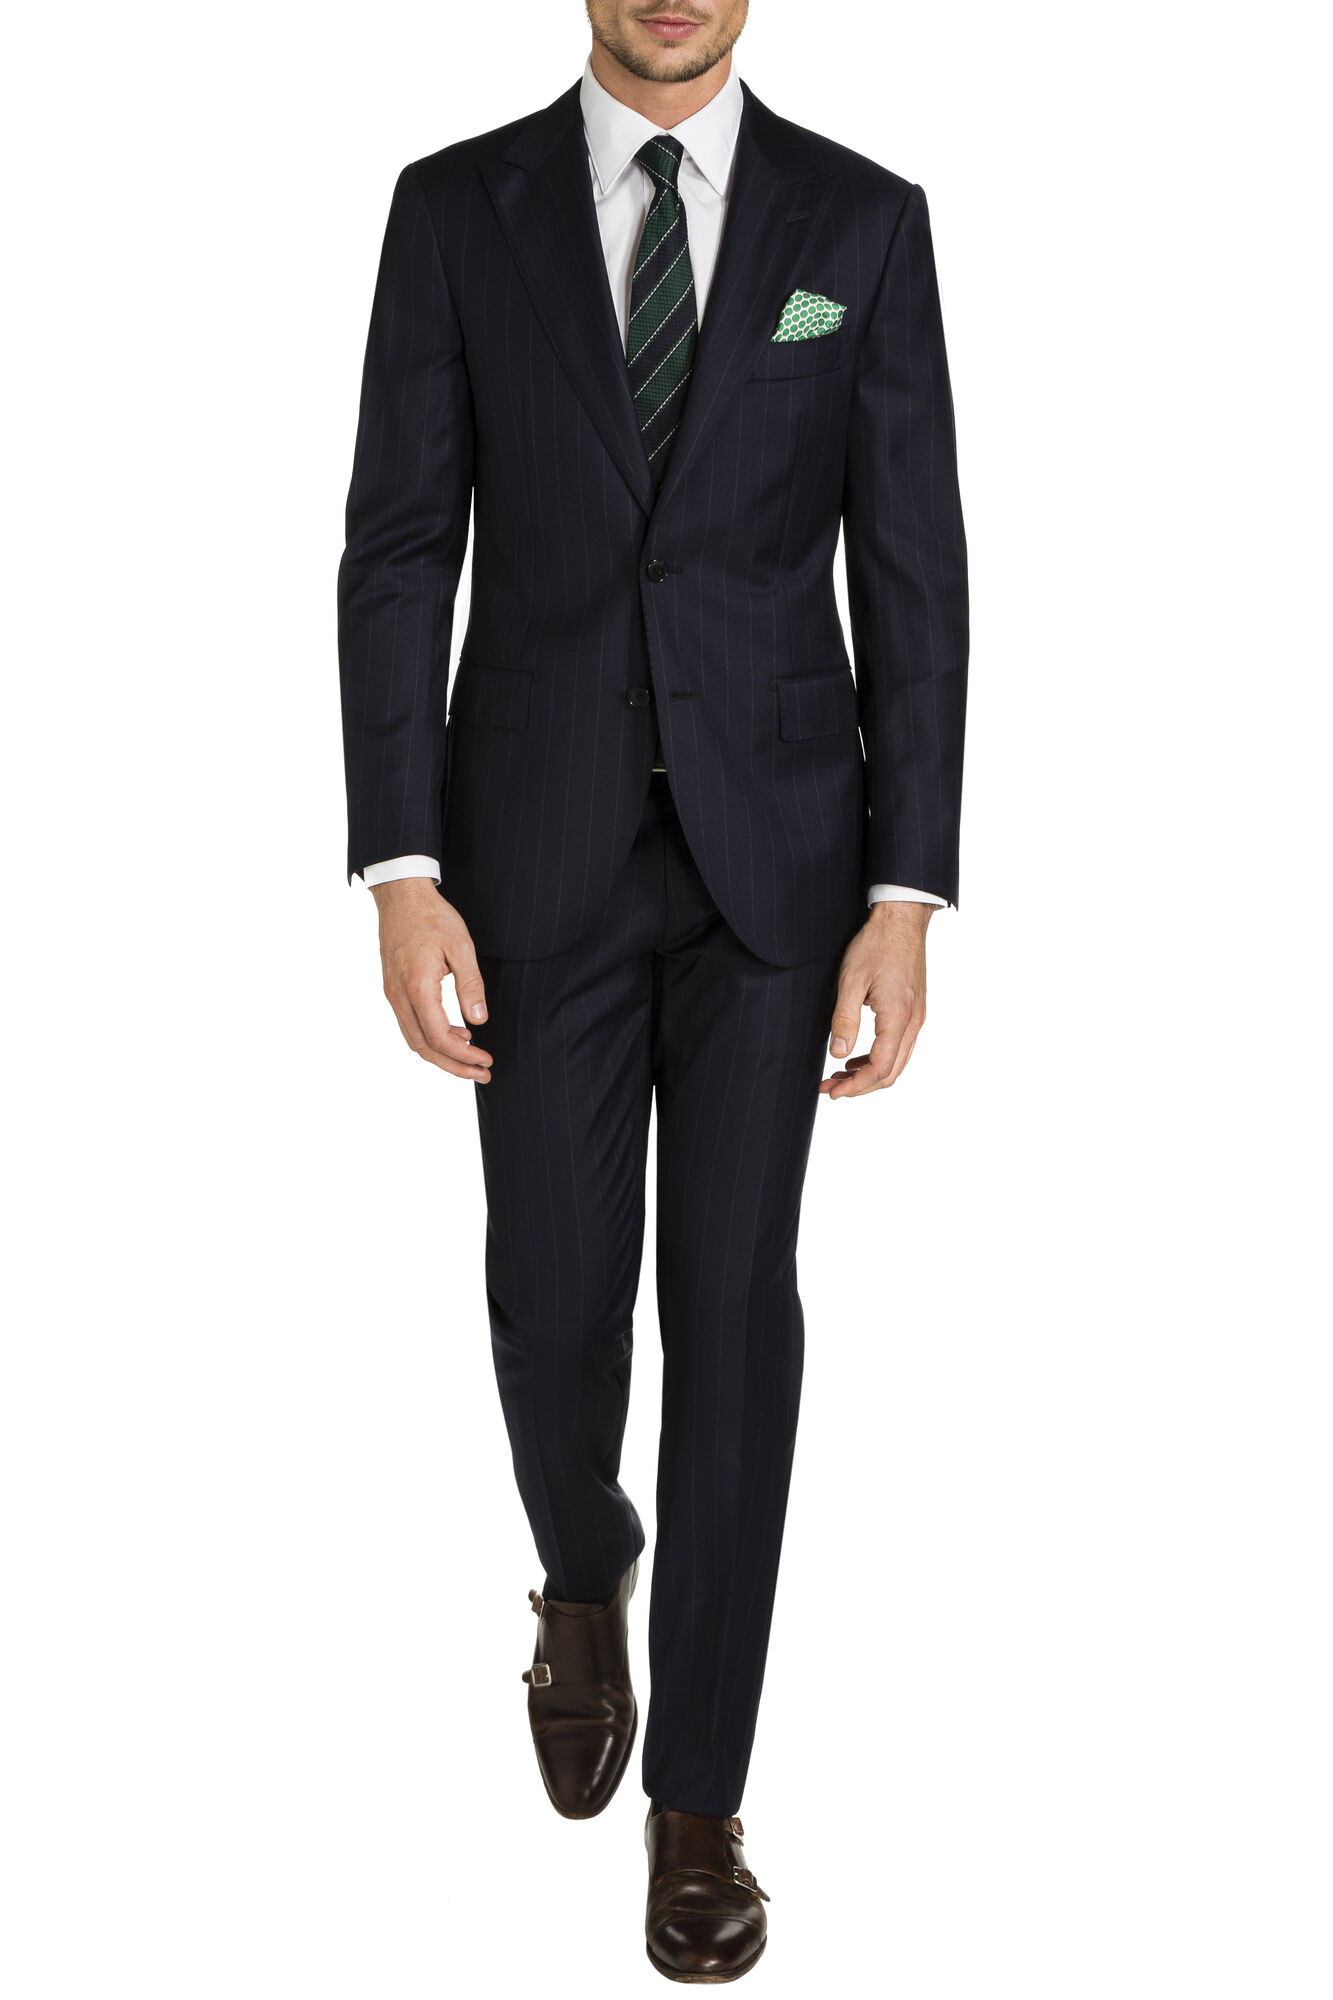 thoughts on this suit